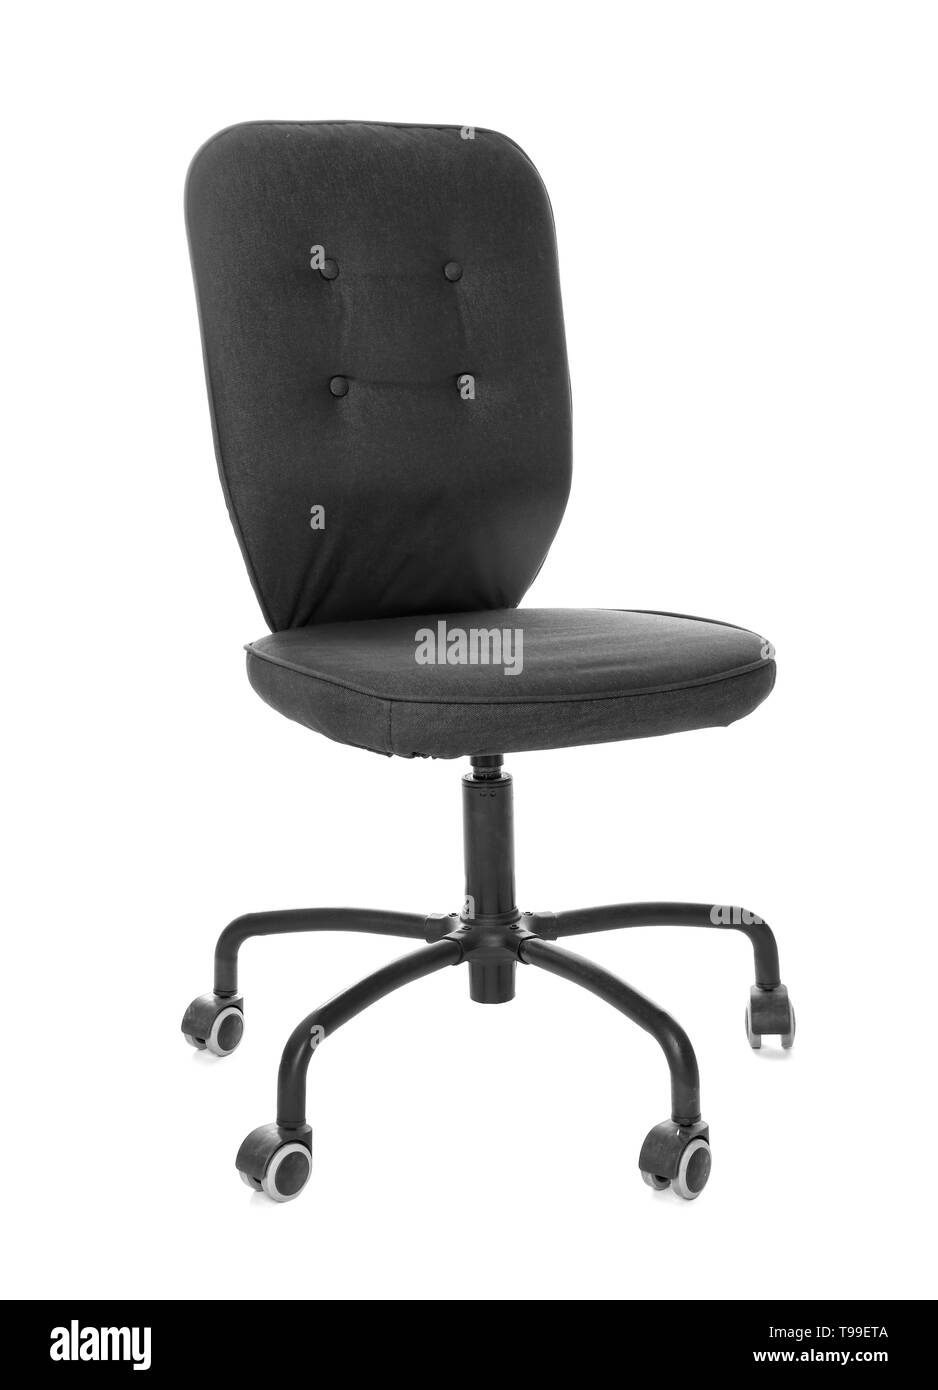 Office chair on white background - Stock Image